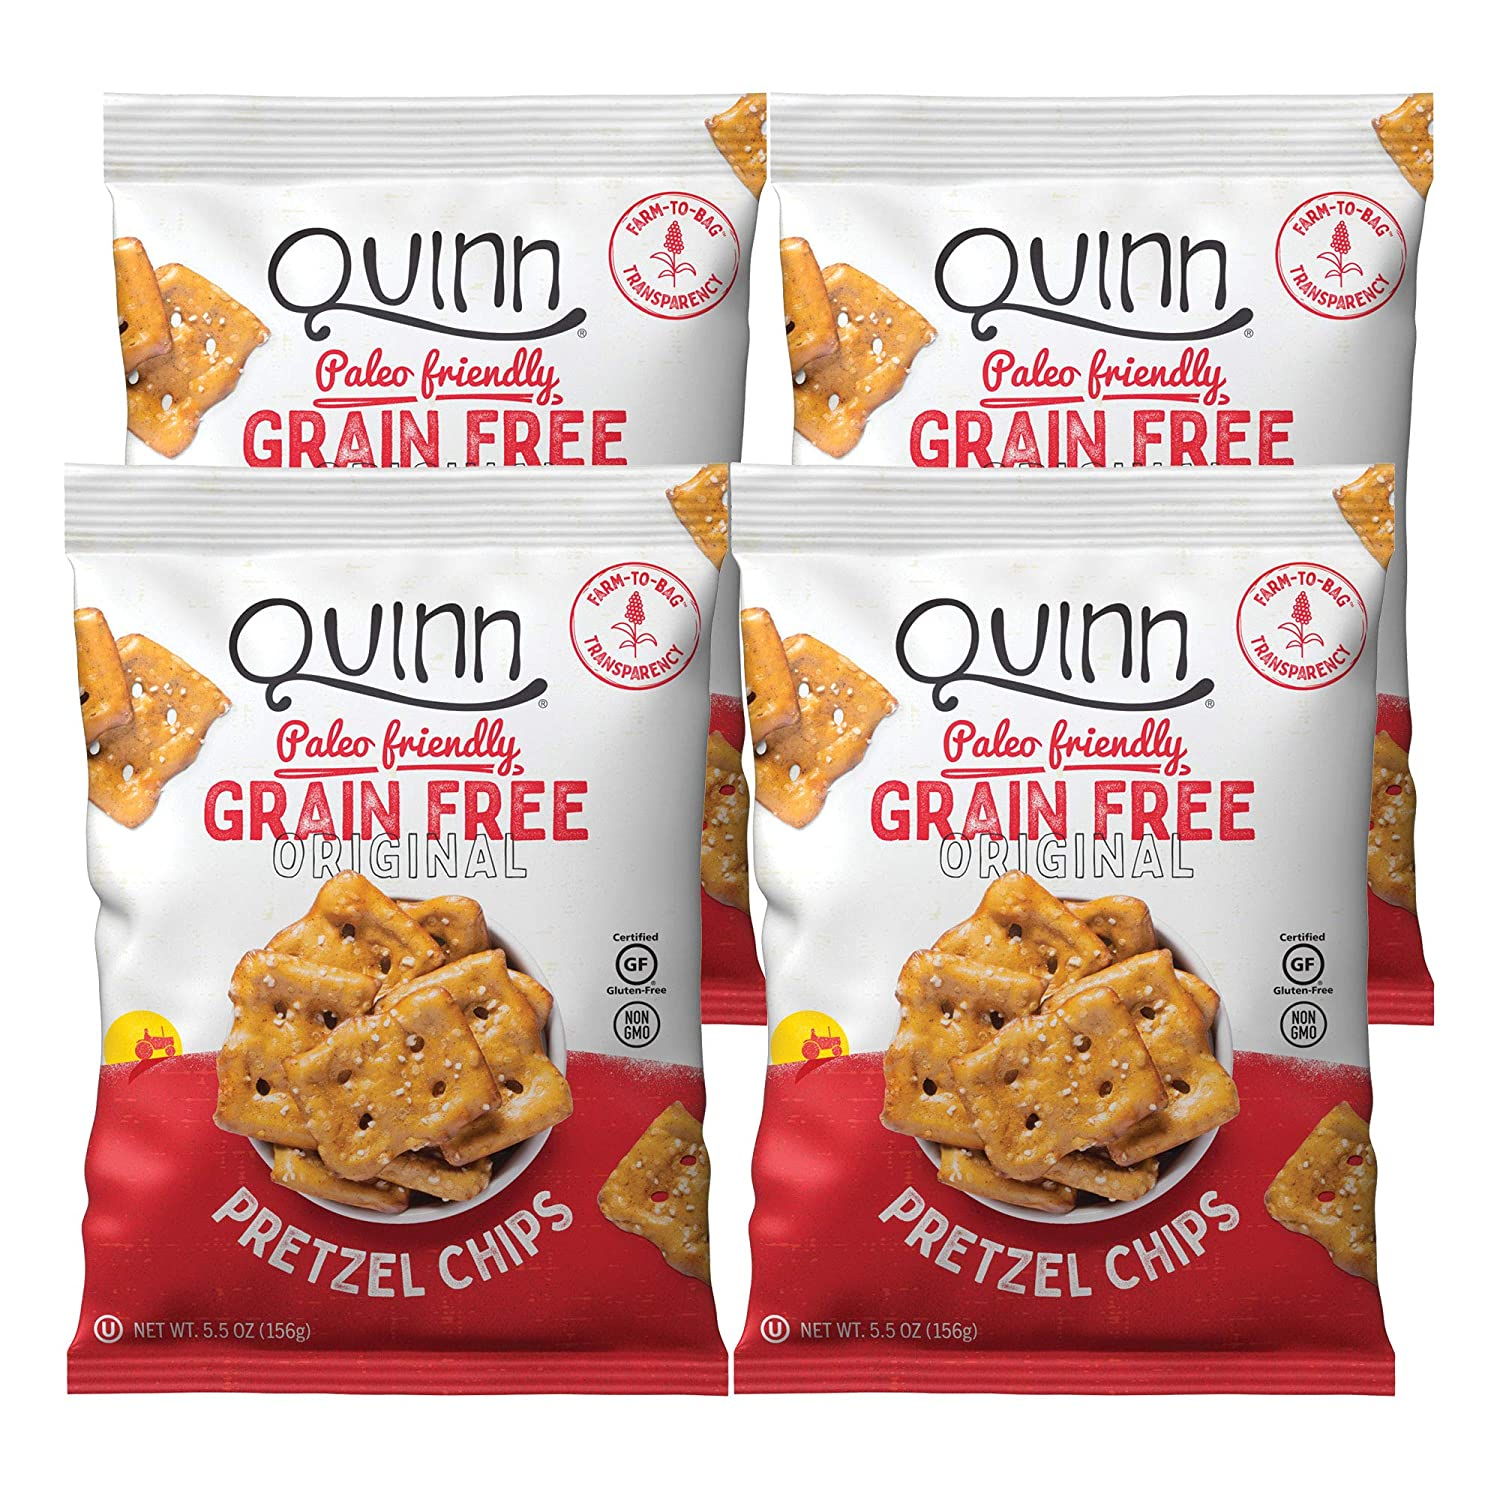 Quinn Original Grain Free Pretzel Chip, 5.5oz Bag (4 Count)